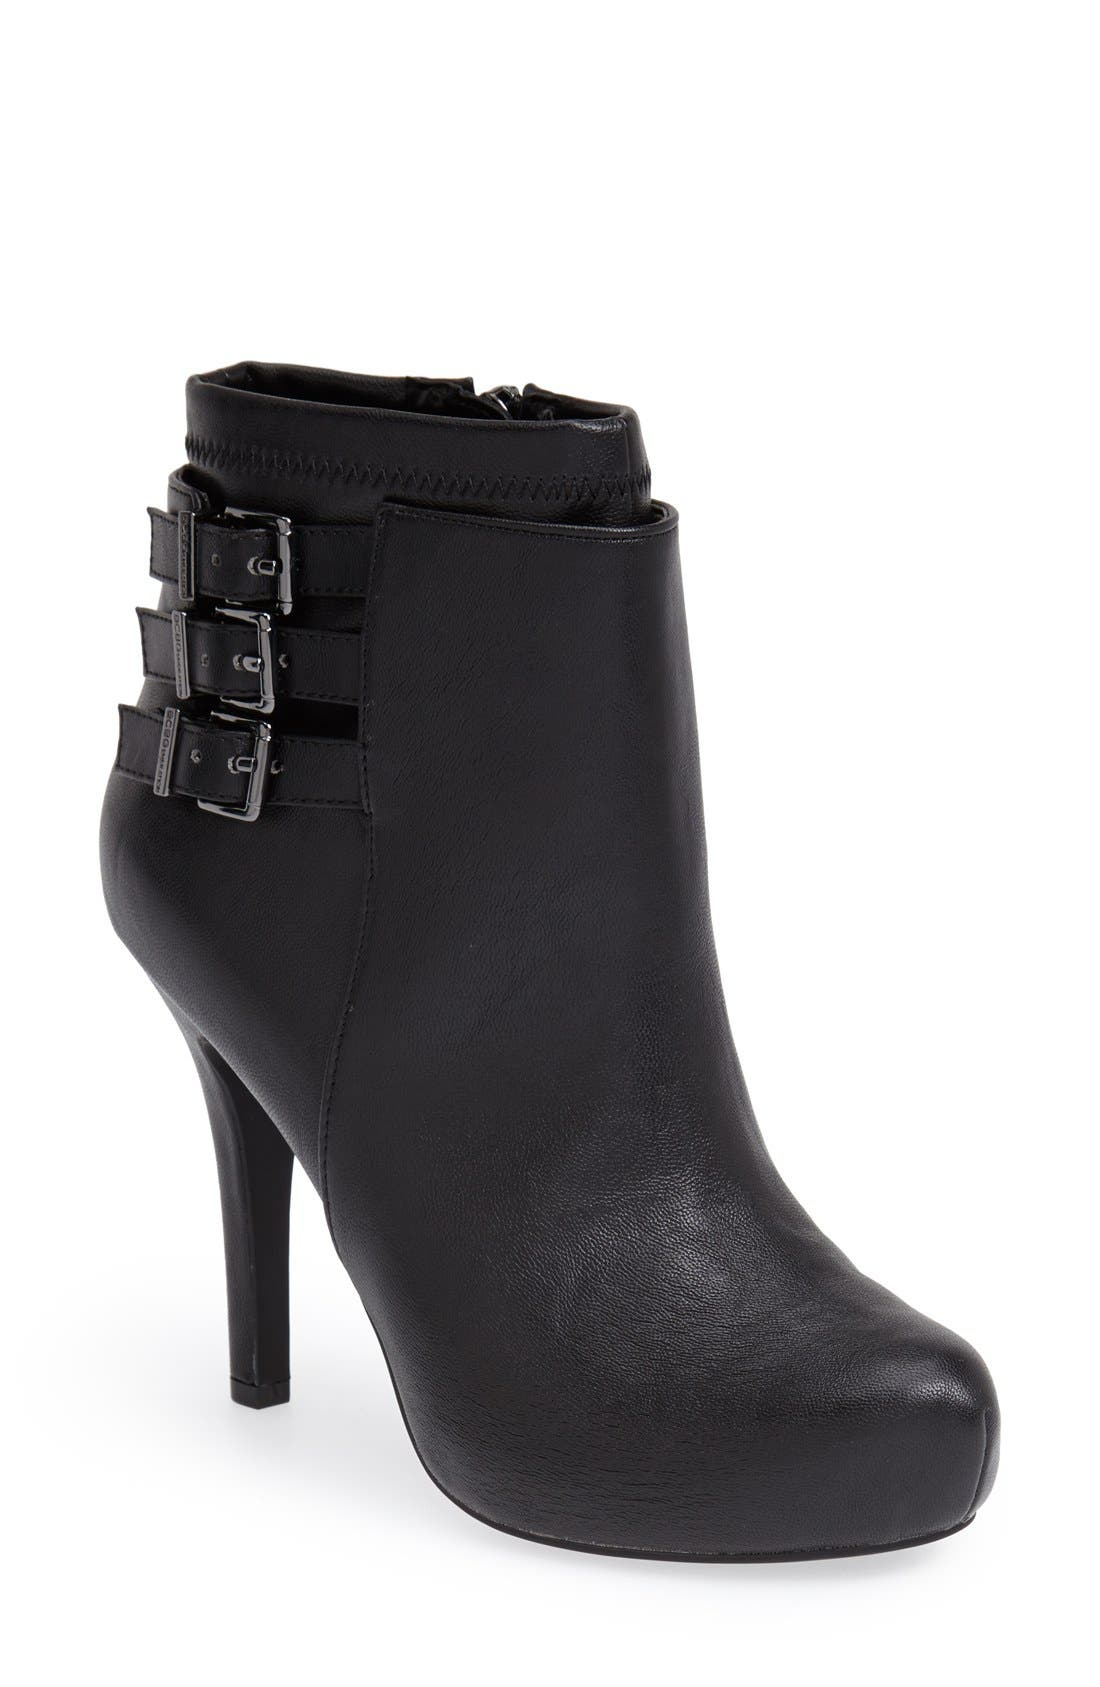 Alternate Image 1 Selected - BCBGeneration 'Fame' Pointy Toe Platform Bootie (Women)